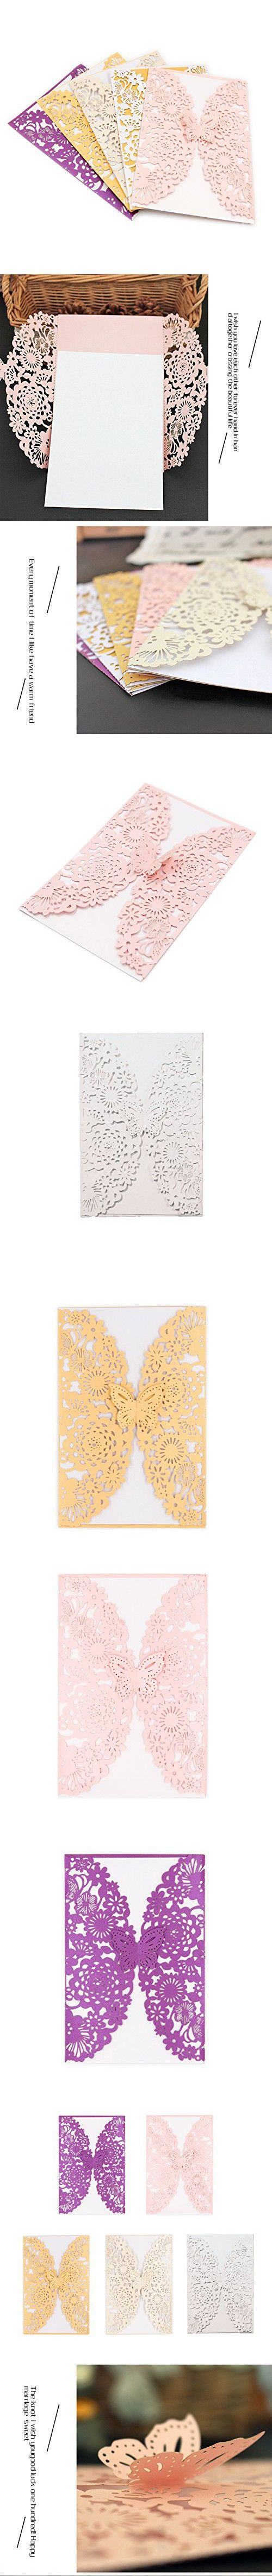 BingGoGo 30x Pearl Paper Laser Cut Invitations , For Baby Shower, Wedding, Mother's Day ,Brides Bridal Shower, Graduation Celebration, Birthday, Party Invitation,Thank You Cards (Multicolor)